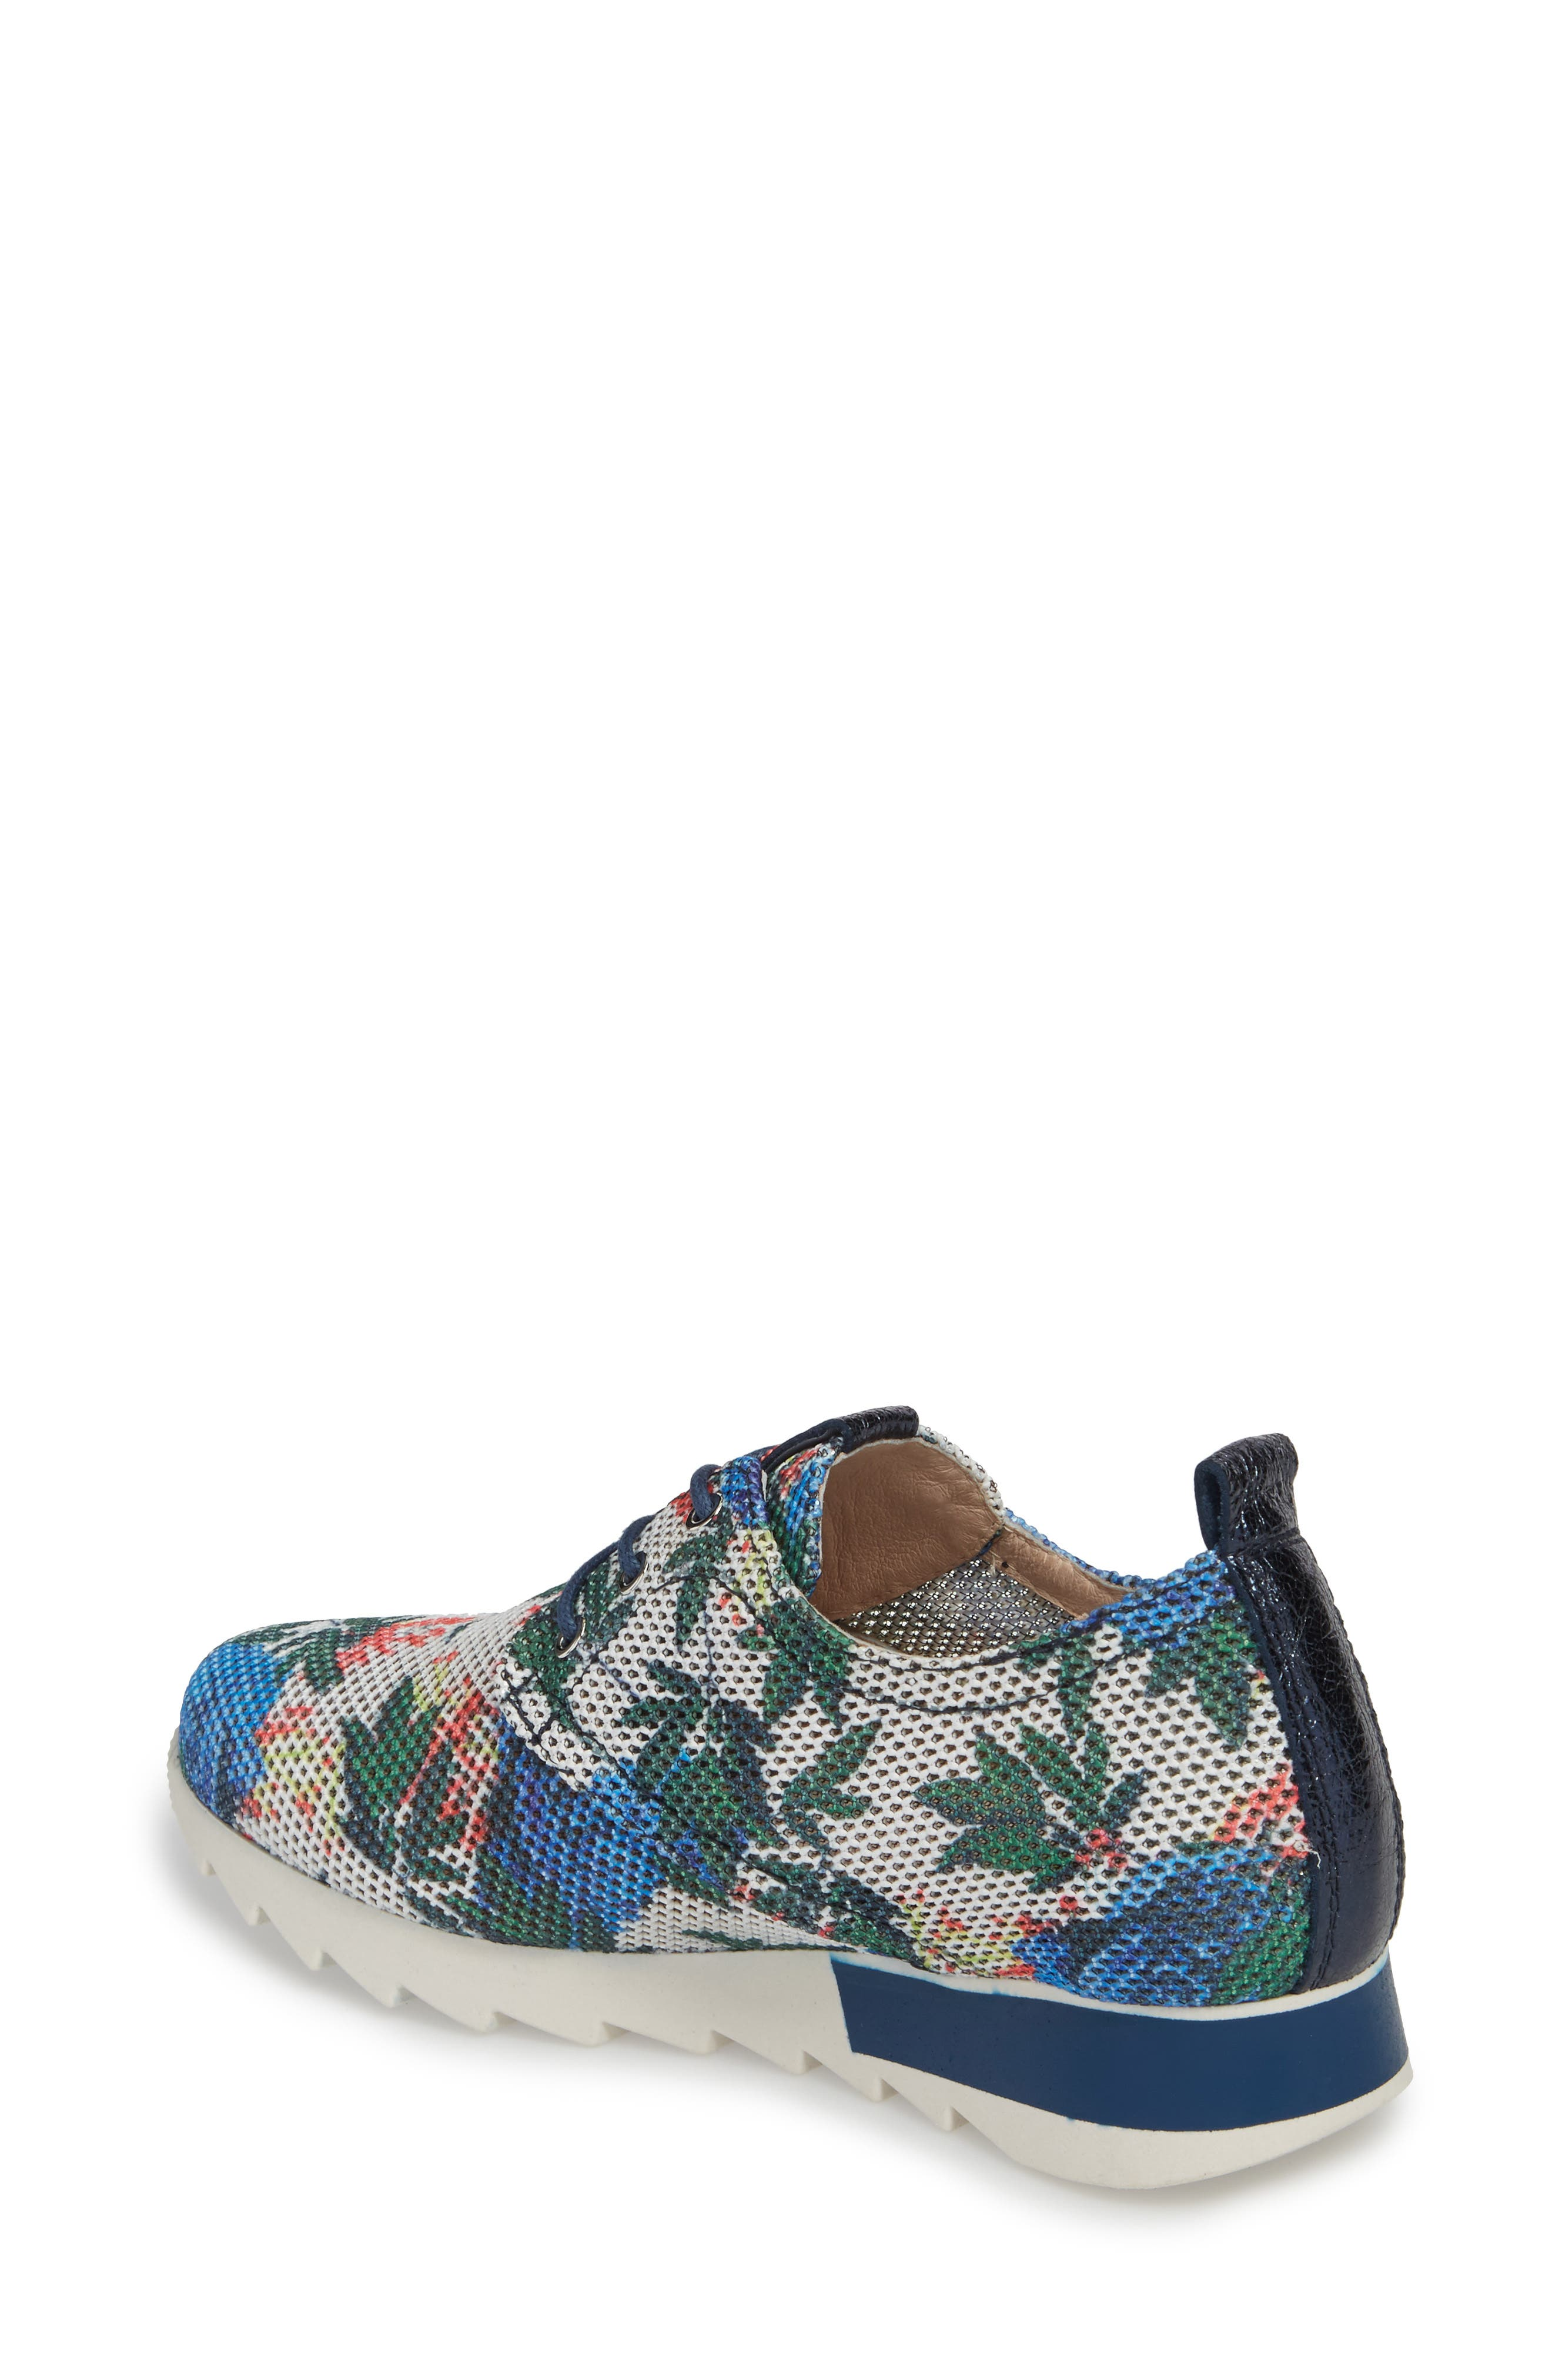 Breezi Perforated Sneaker,                             Alternate thumbnail 2, color,                             GINSEN LEATHER